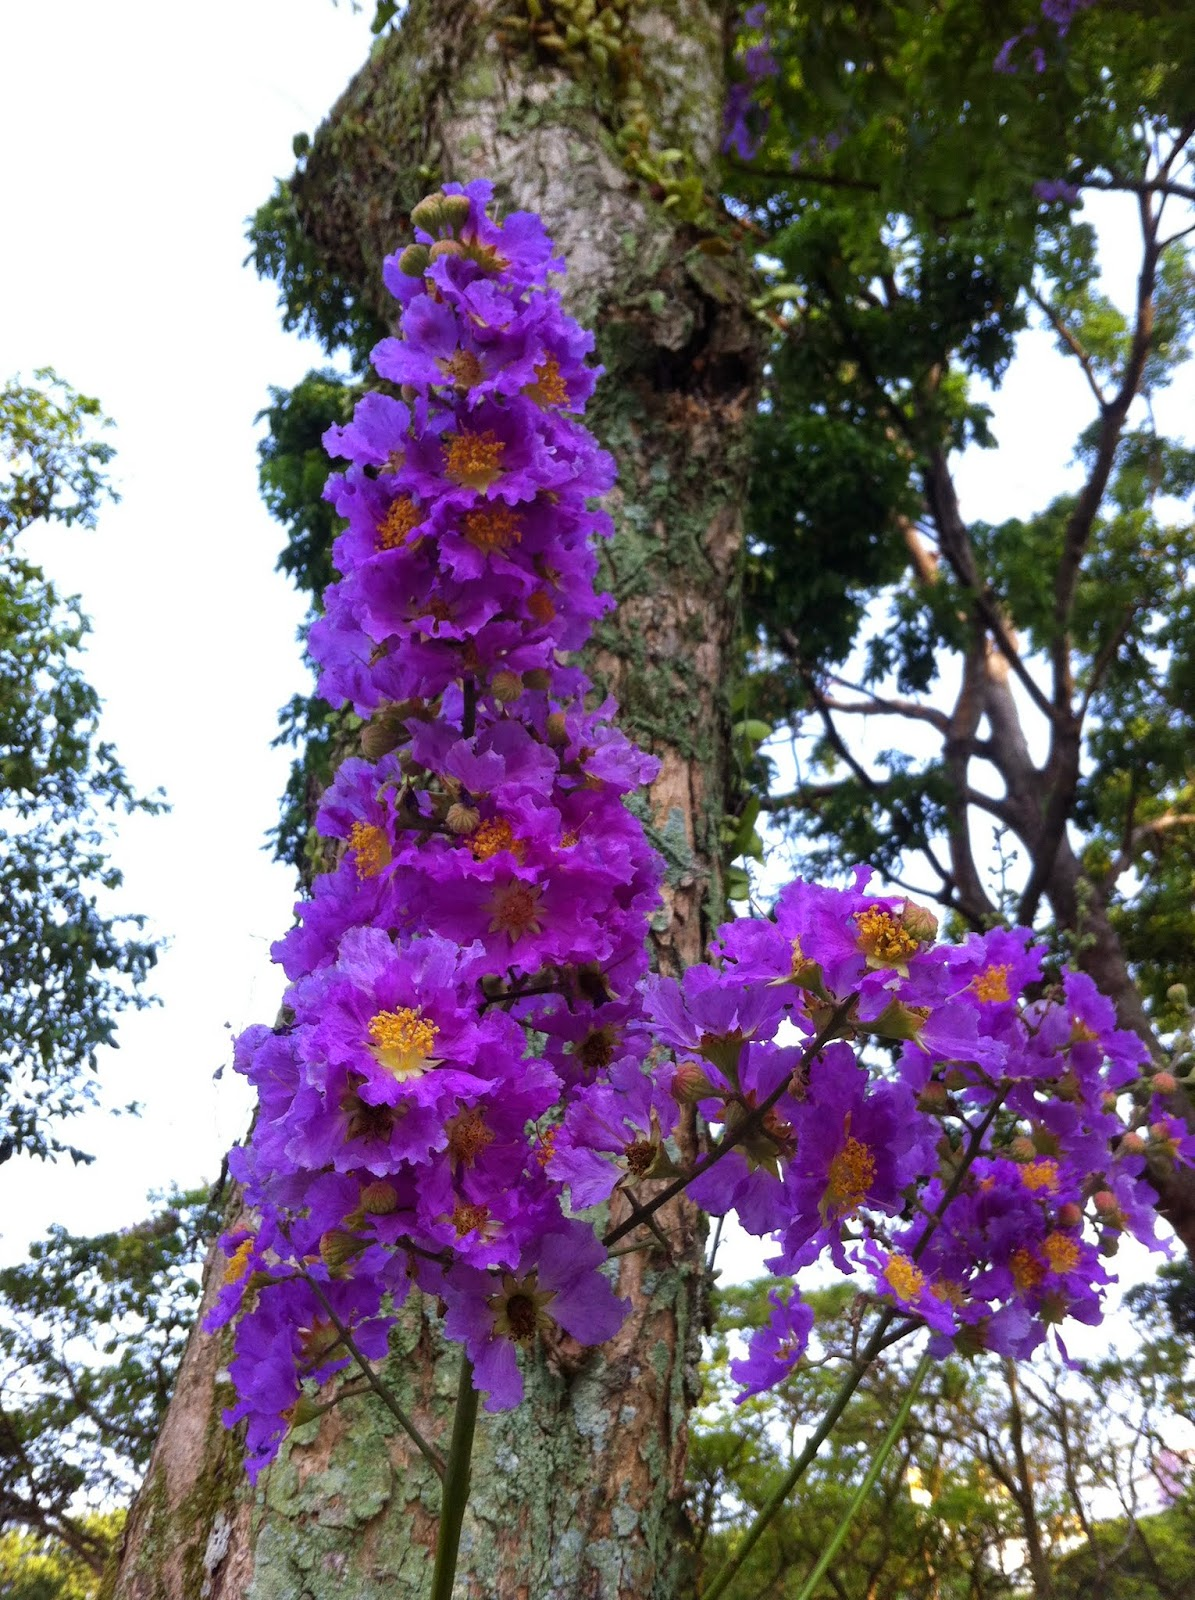 Singapore plants lover purple flowers tree in bishan park - Flowers that grow on tree trunks ...